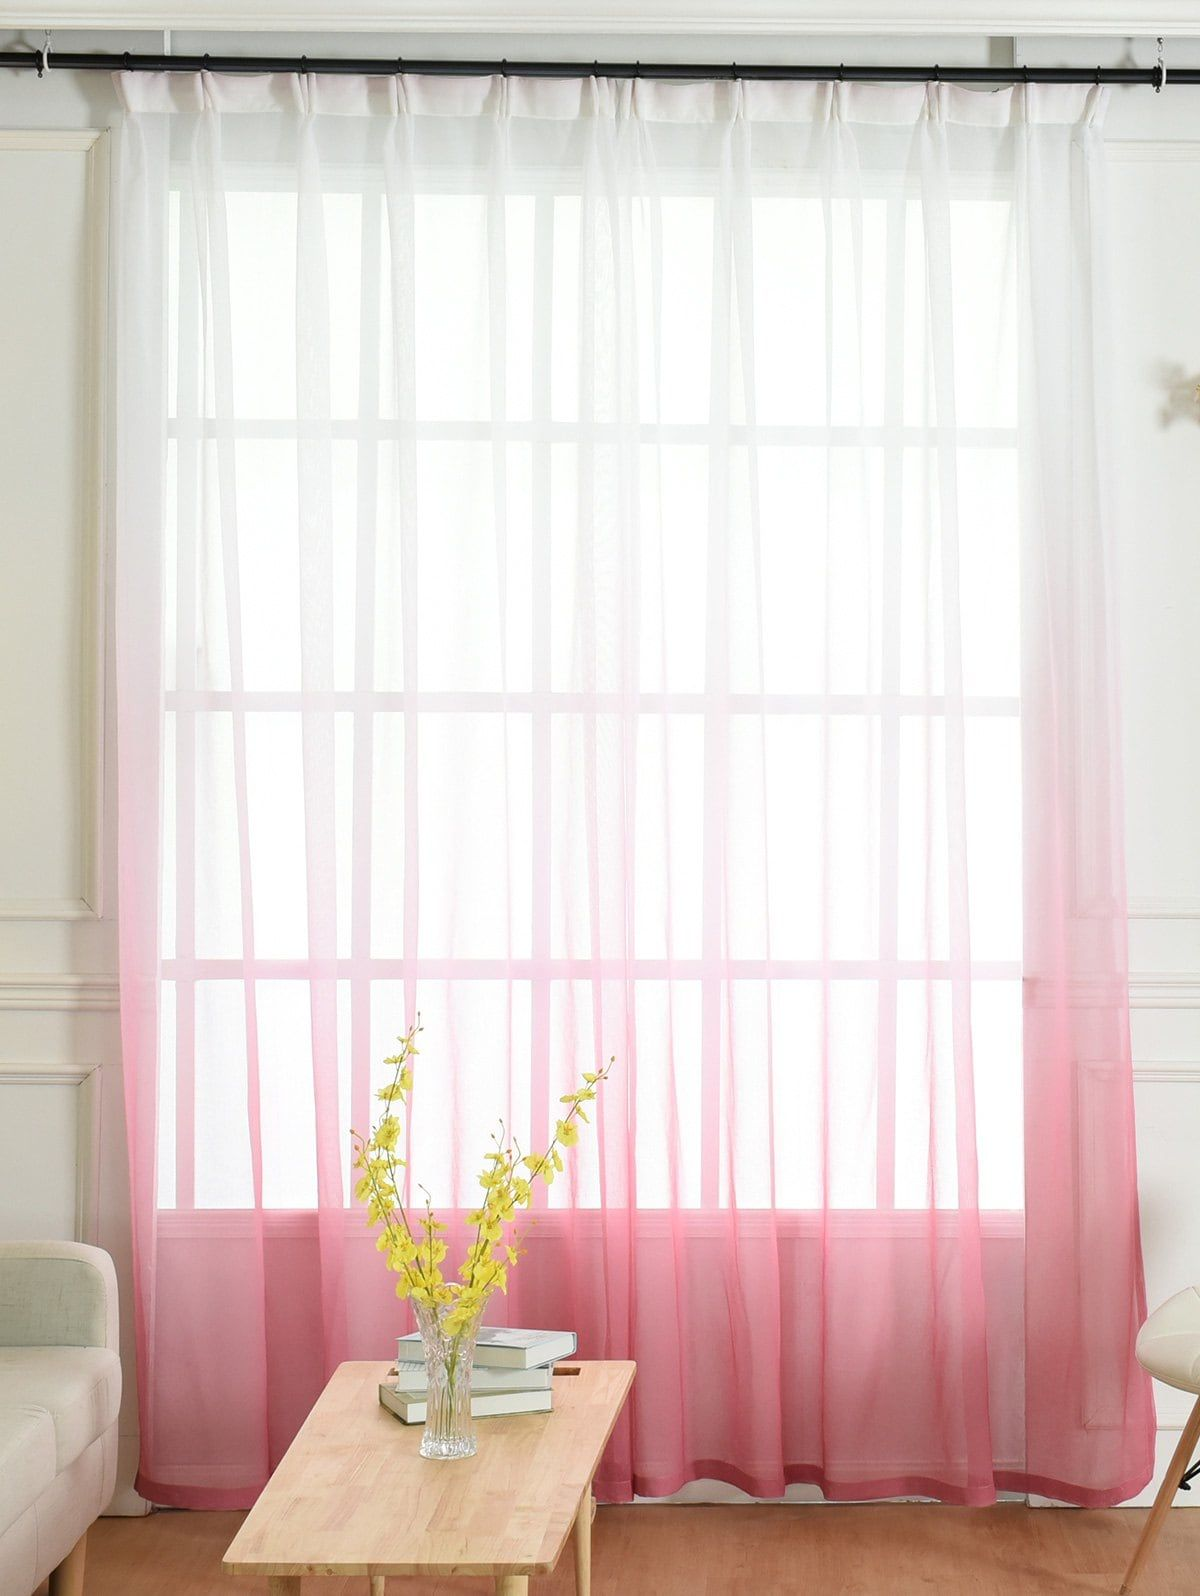 Ombre Sheer Tulle Curtain Decorative Window Screen Tulle